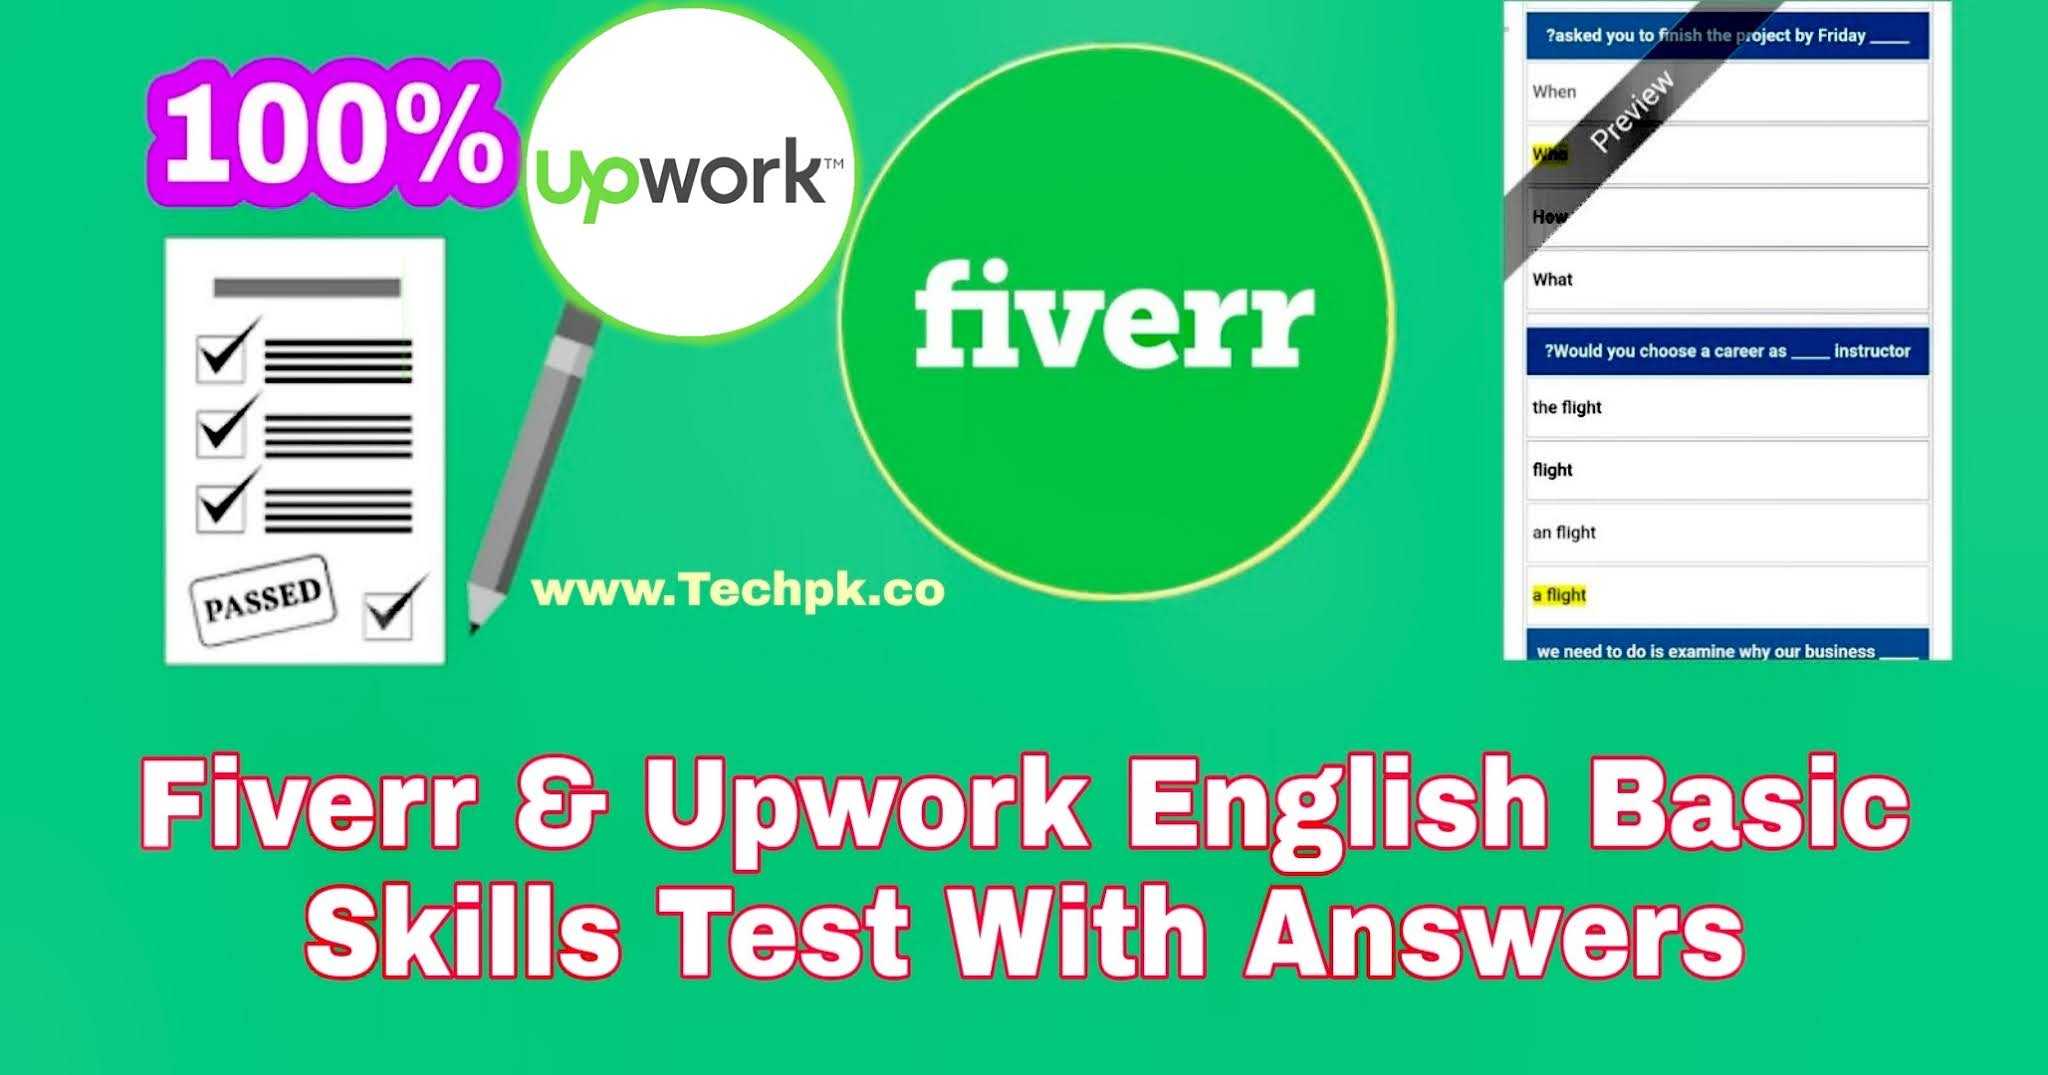 Fiverr And Upwork English Basic Skills Test With Answers 2021